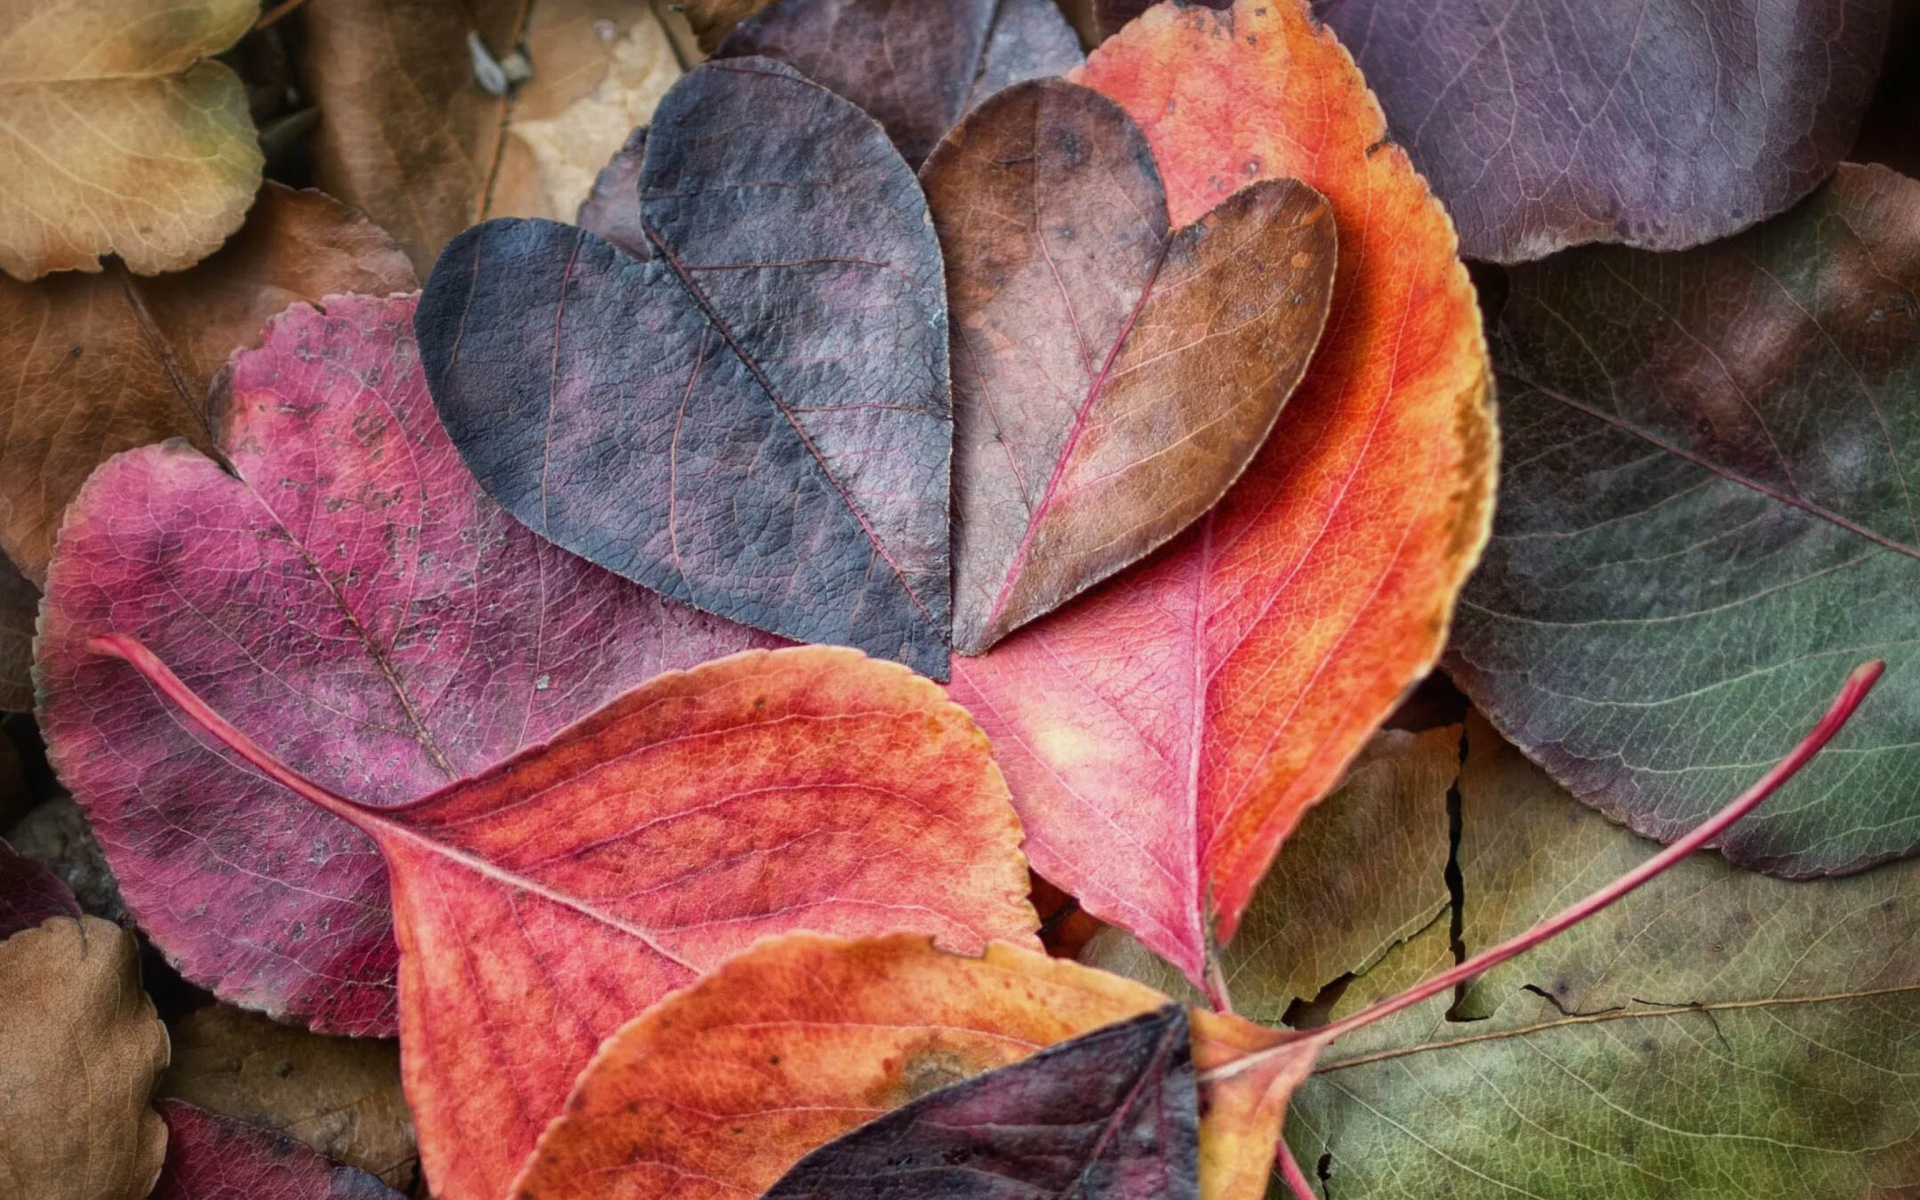 Free Computer Wallpaper Backgrounds For Fall Download Autumn Love Wallpaper Gallery